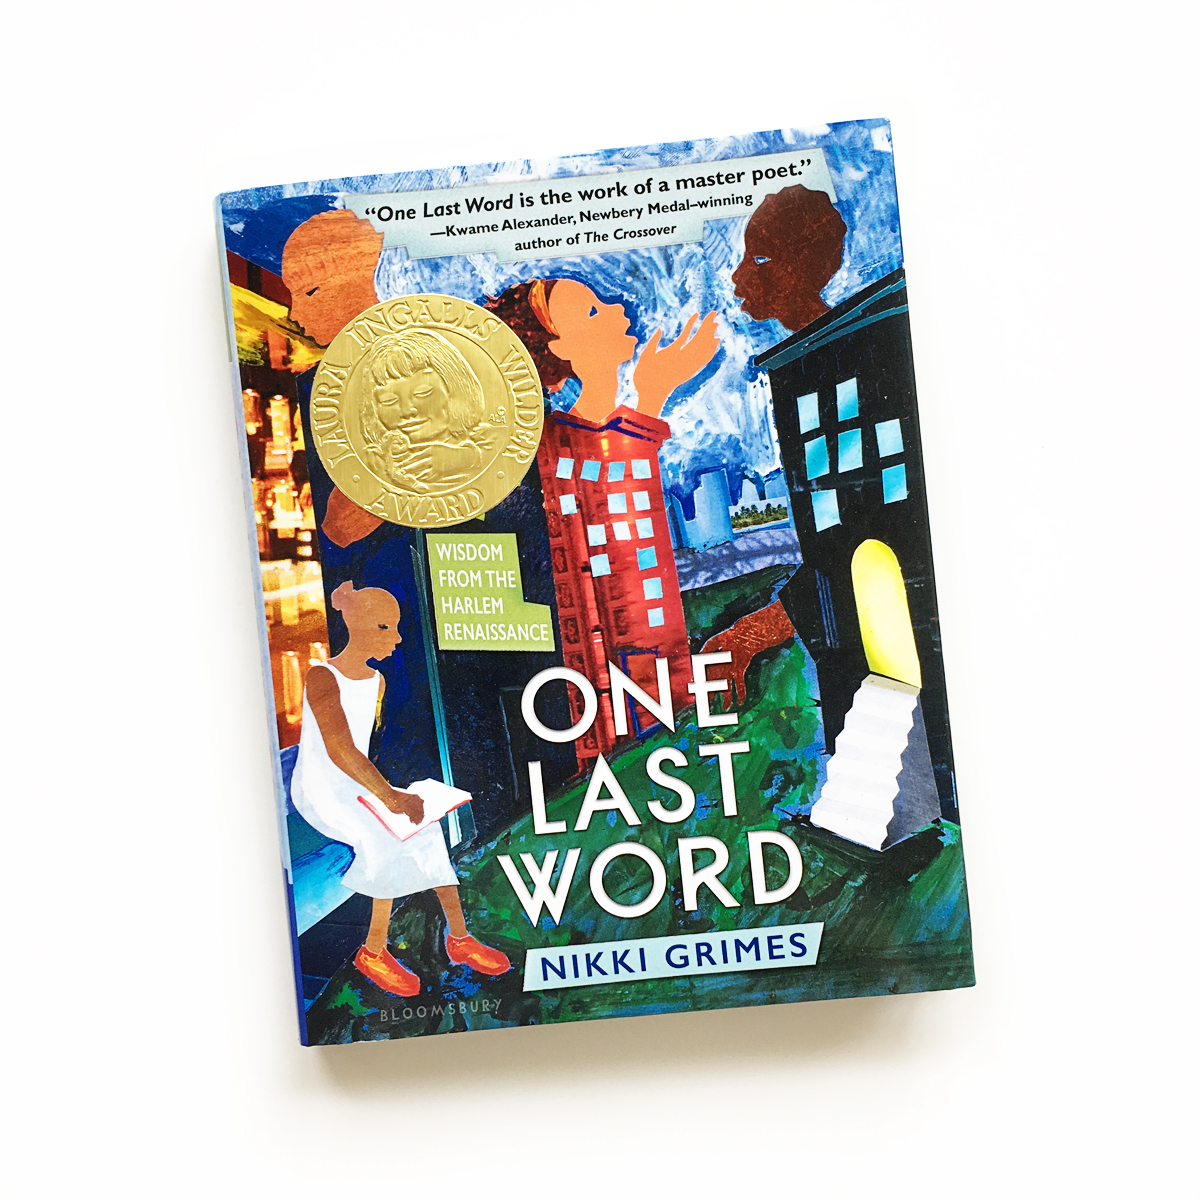 One Last Word: Wisdom from the Harlem Renaissance | Books For Diversity